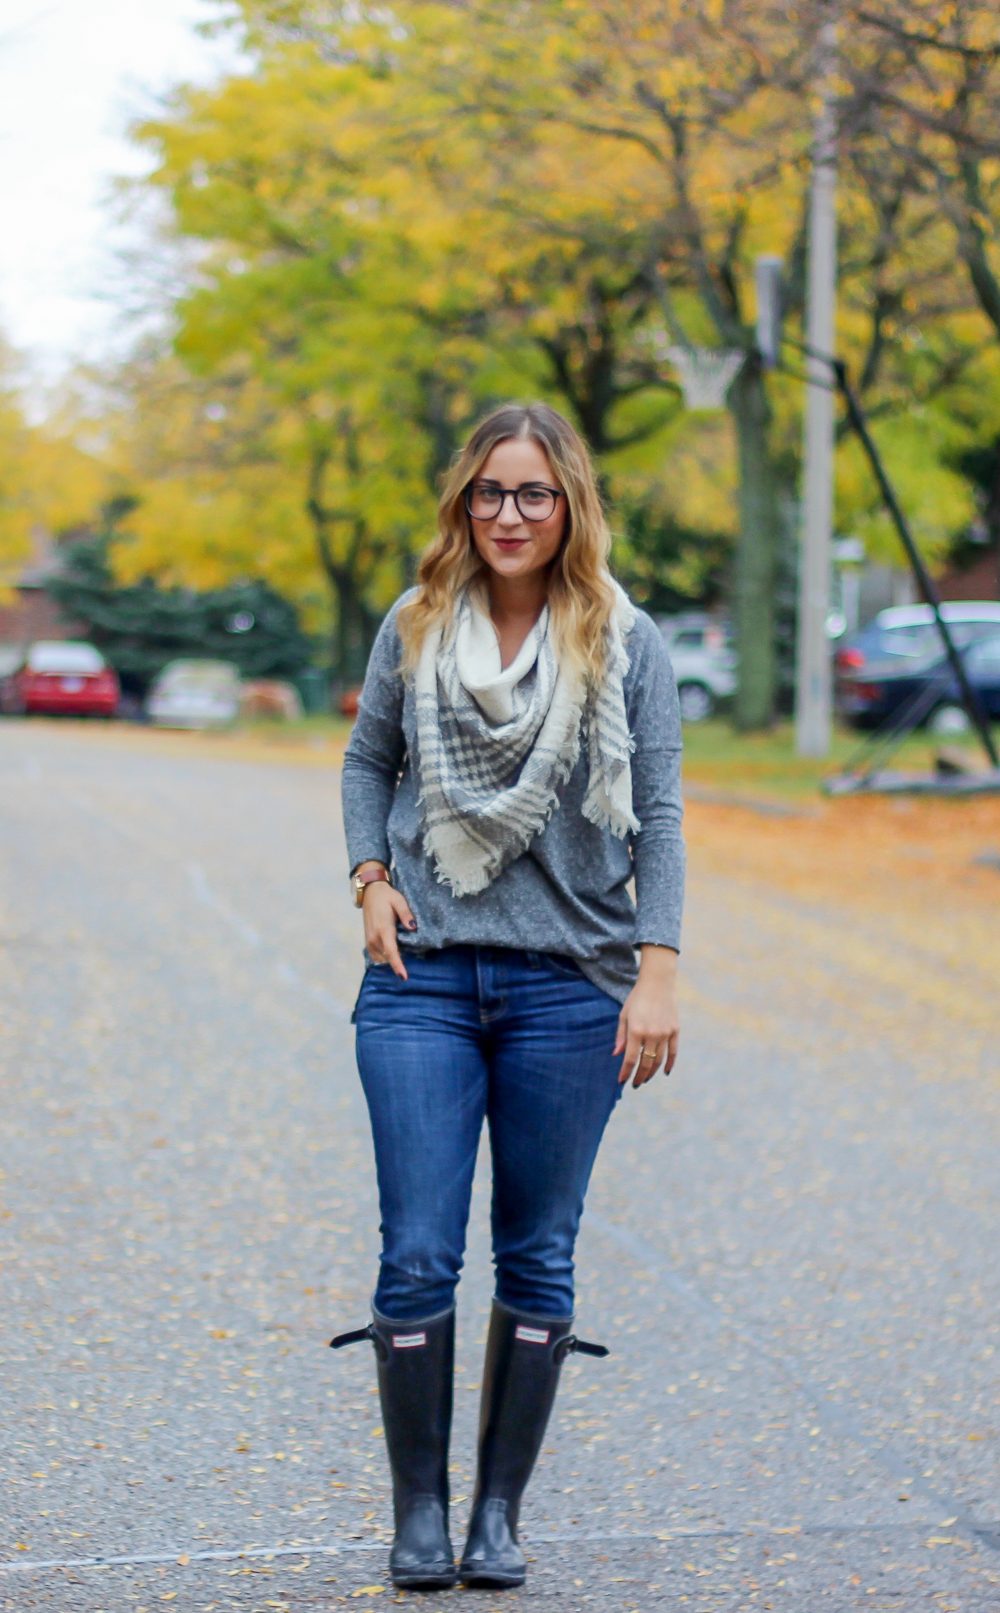 What to wear to brunch in the fall - Guess blanket scarf, Topshop long sleeve tee, skinny jeans, Hunter rain boots